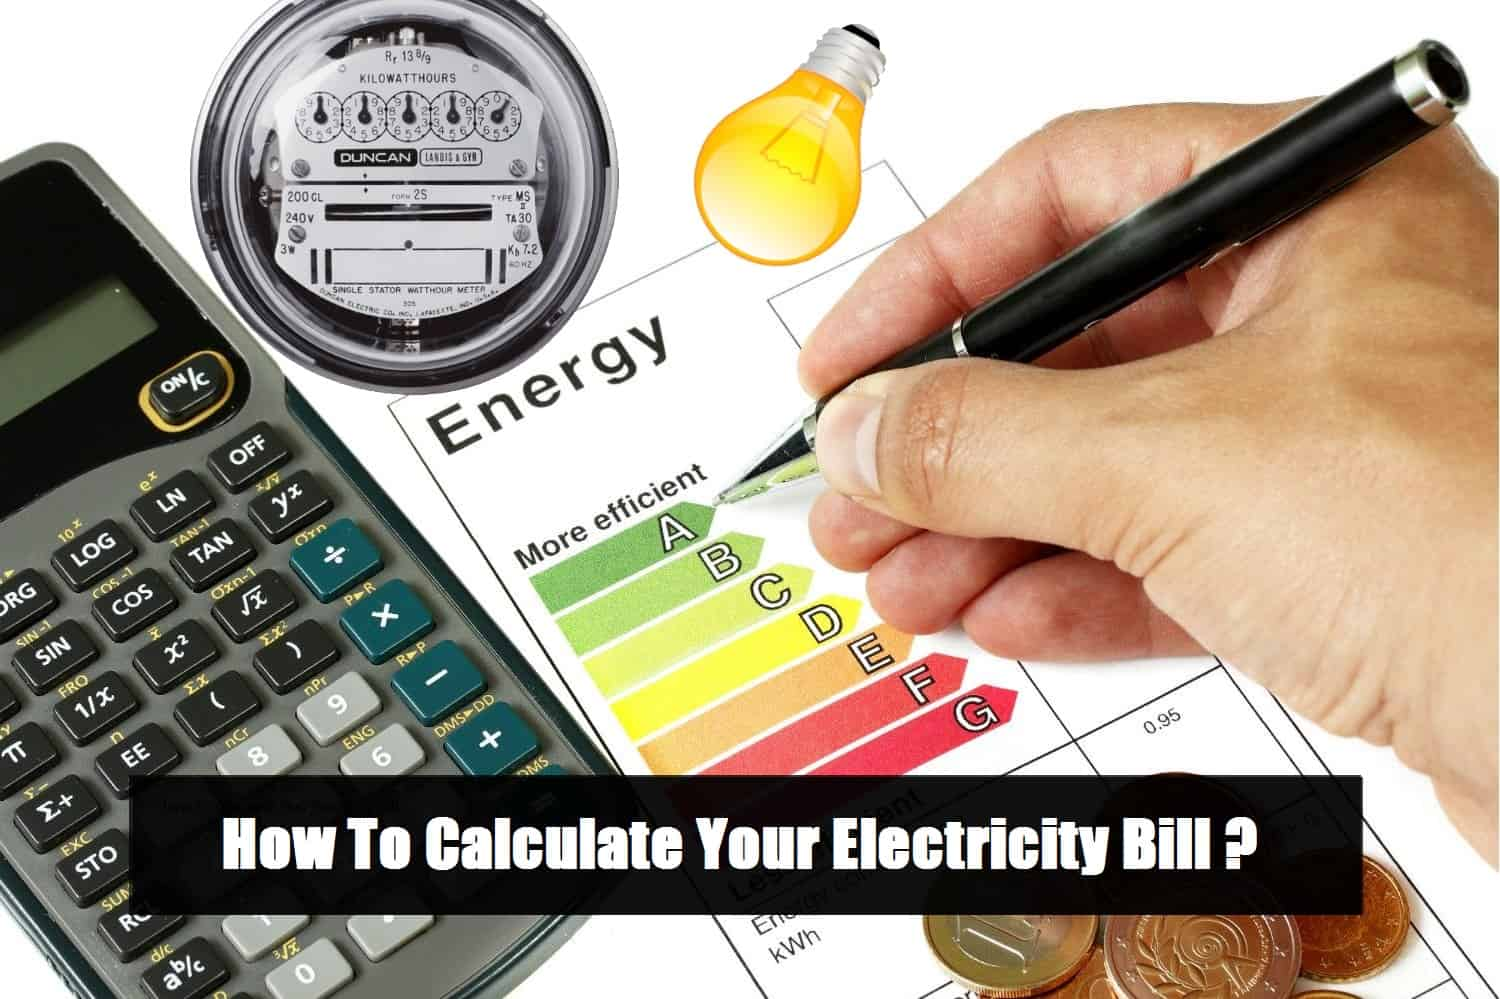 How To Calculate Your Electricity Bill Simple Calculation on Basic Home Electrical Wiring Diagrams